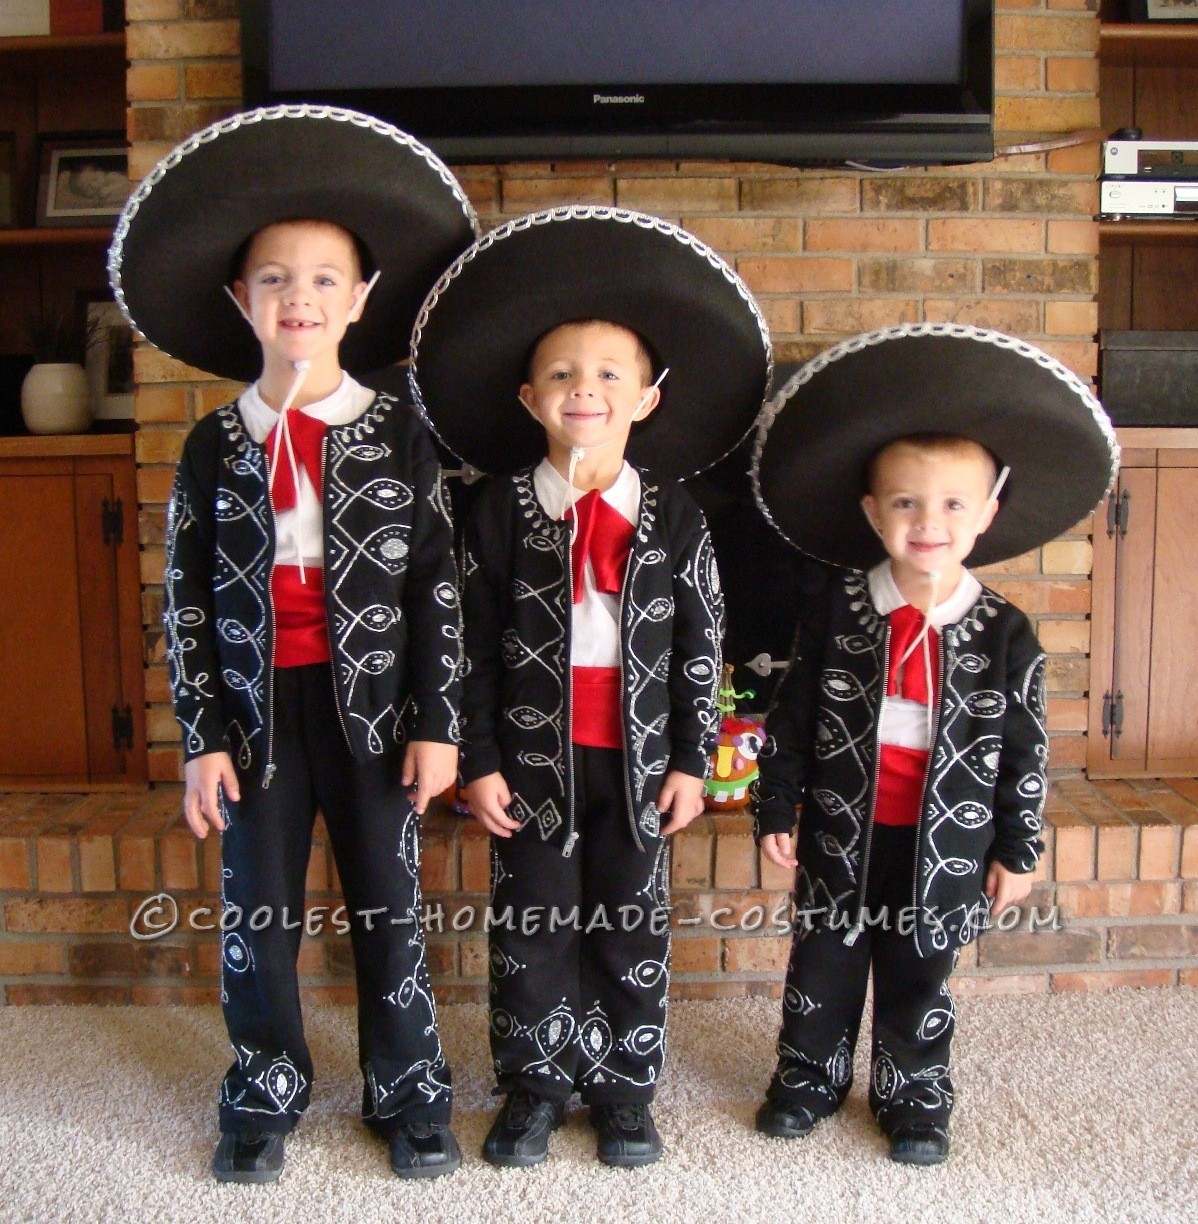 we have three little boys who are super good buddies and also very silly and funny we tried to think of halloween costumes that they could wear as a group